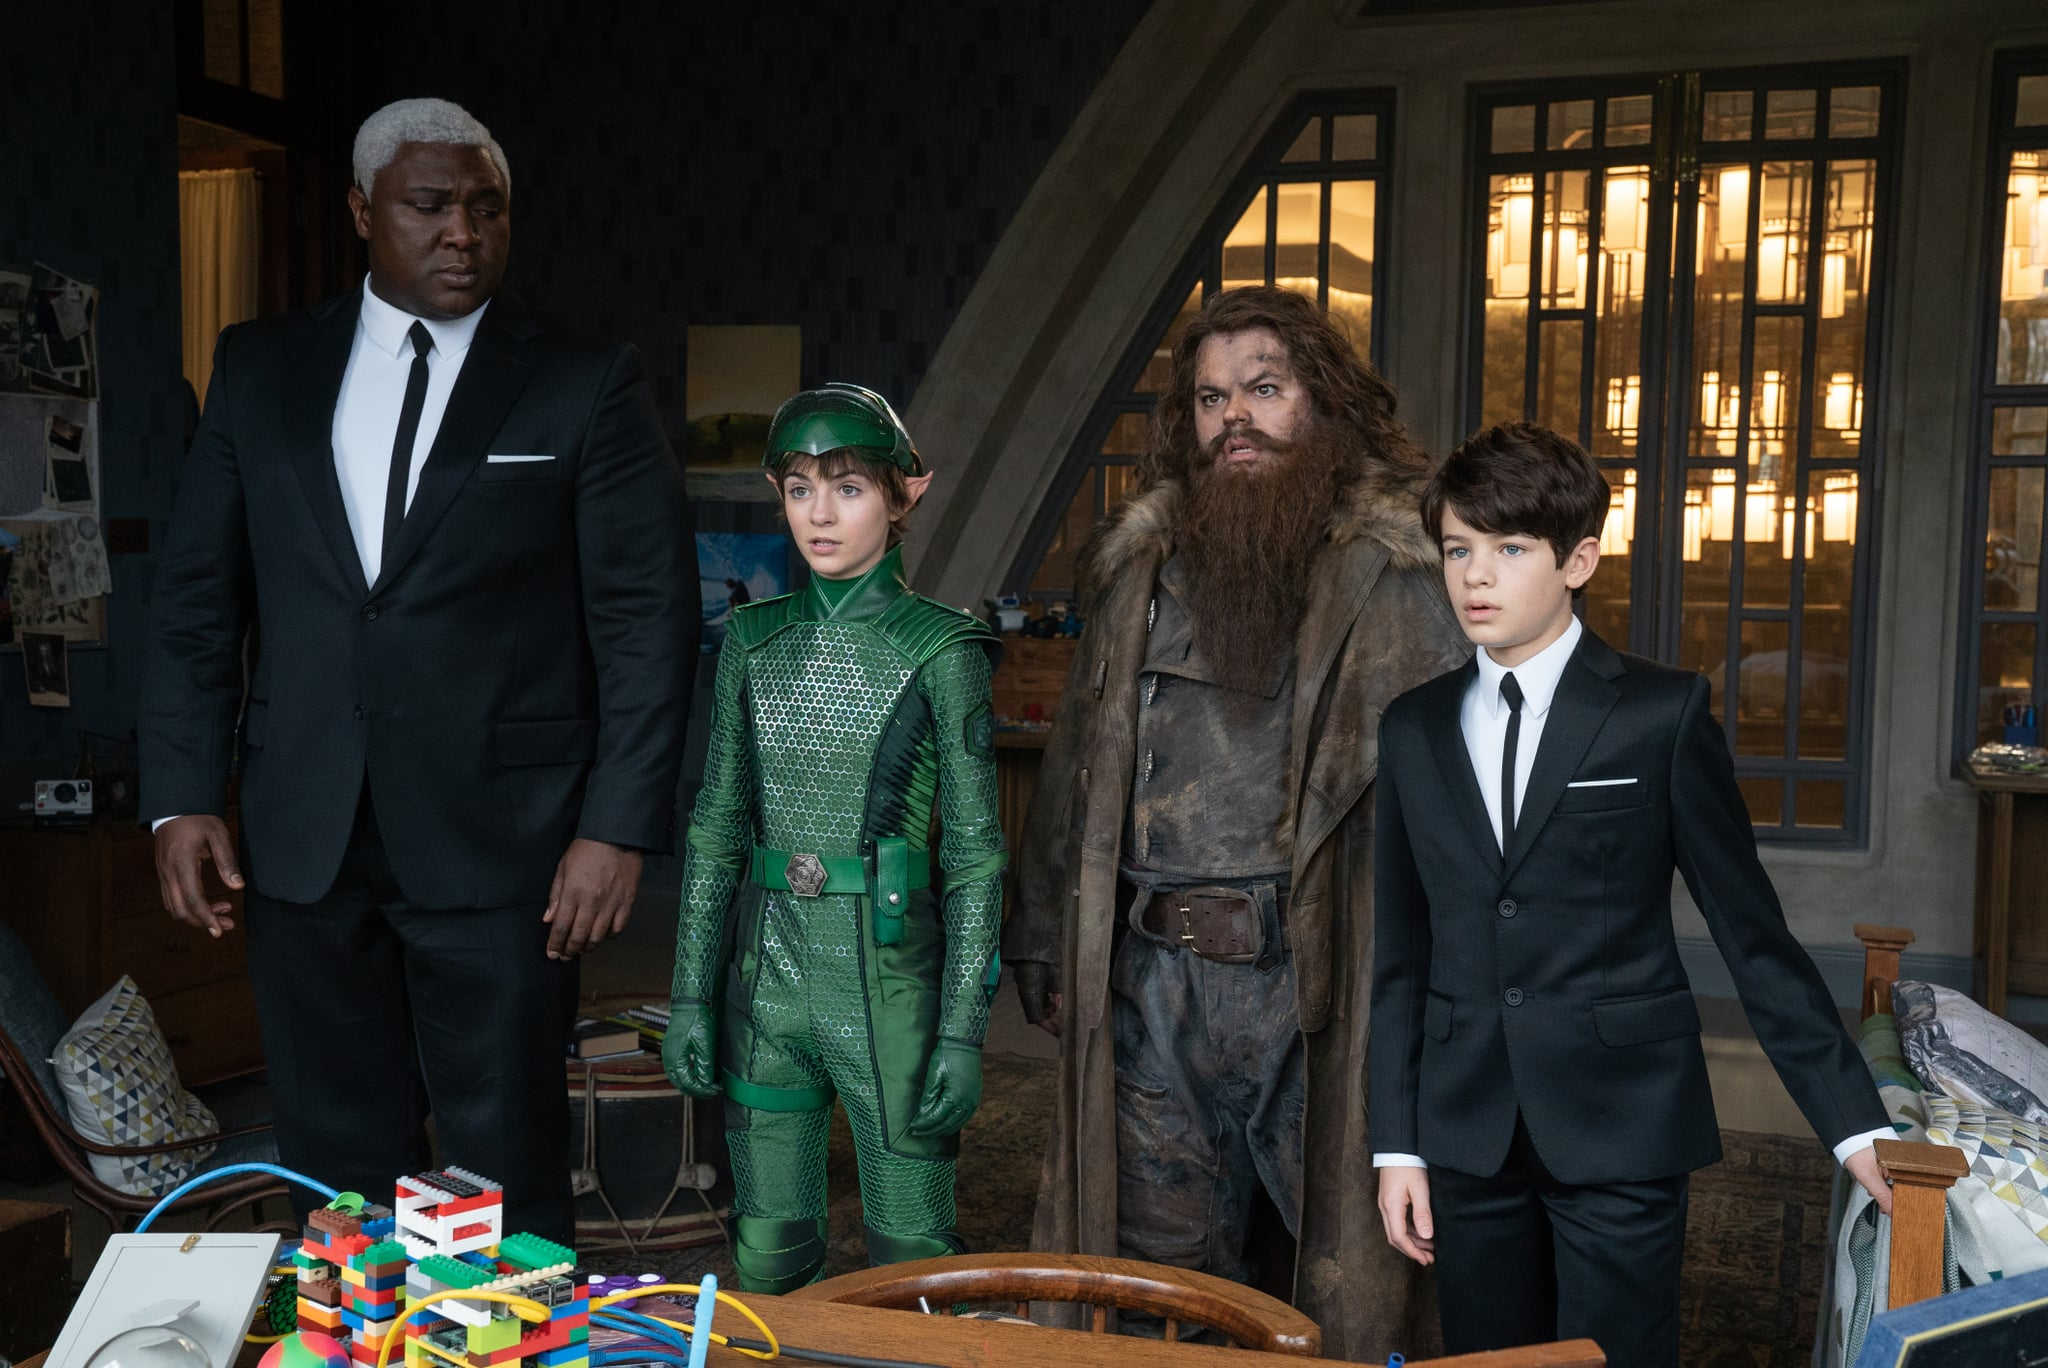 Nonso Anozie is Butler, Lara McDonnell is Holly Short, Josh Gad is Mulch Diggums and Ferdia Shaw is Artemis Fowl in Disney's ARTEMIS FOWL, directed by Kenneth Branagh. Photo by Nicola Dove. © 2020 Disney Enterprises, Inc. All Rights Reserved.